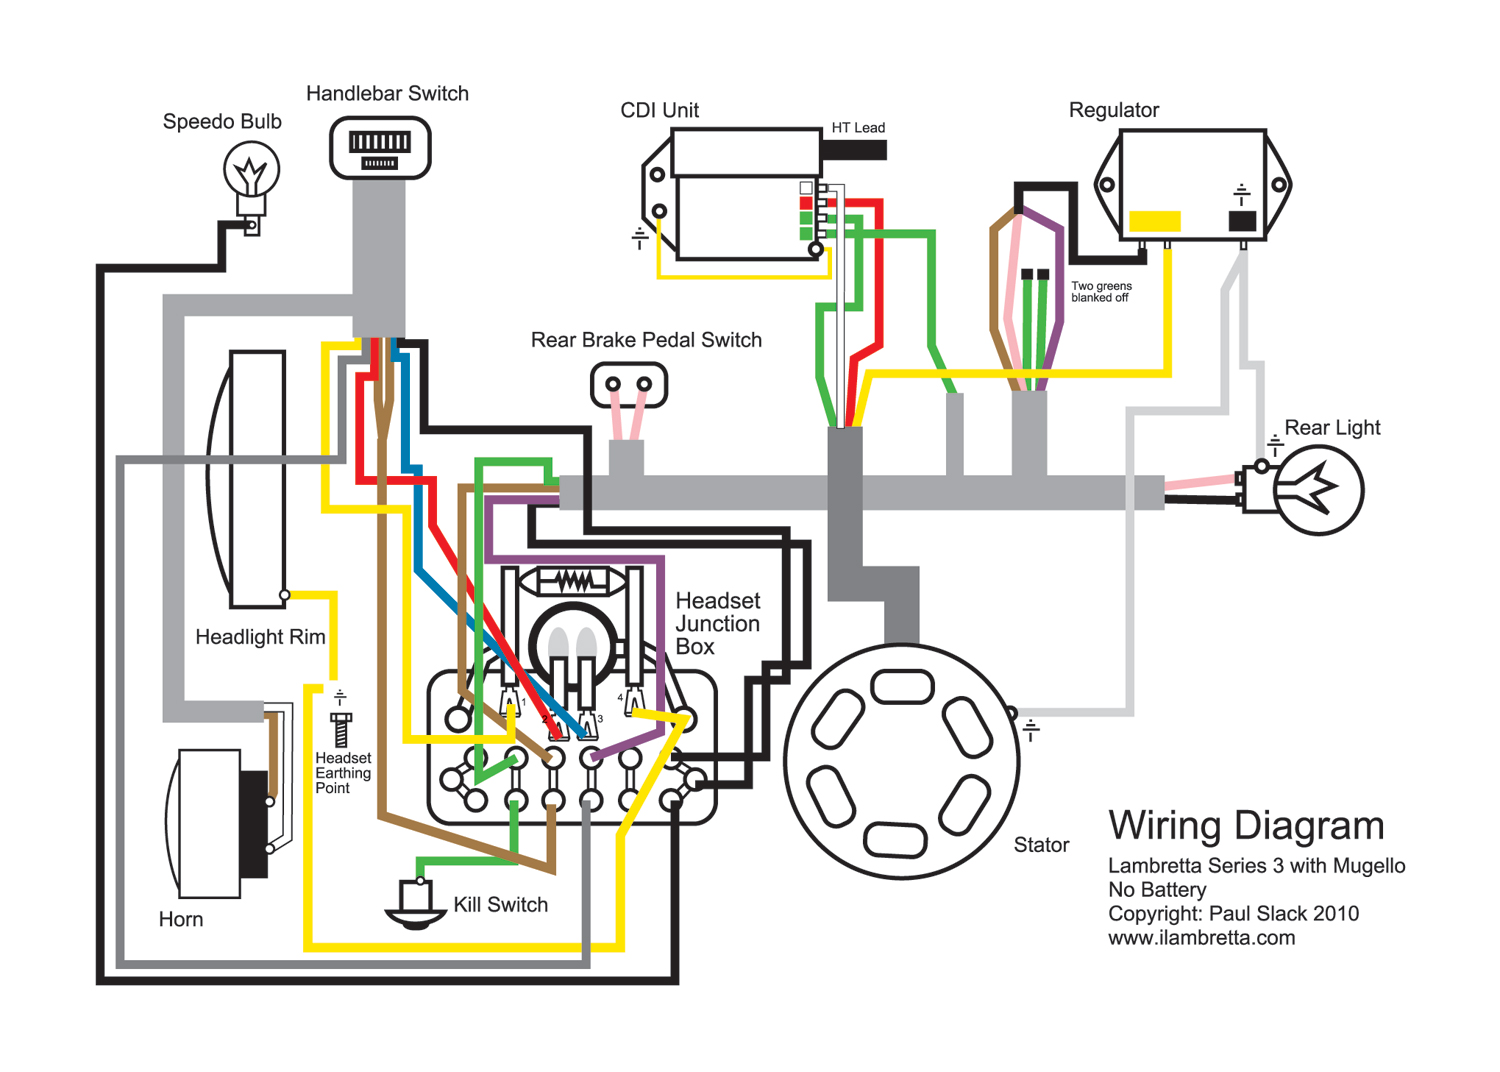 Li150 Wiring lambretta restoration the wiring loom lambretta wiring loom diagram at bakdesigns.co